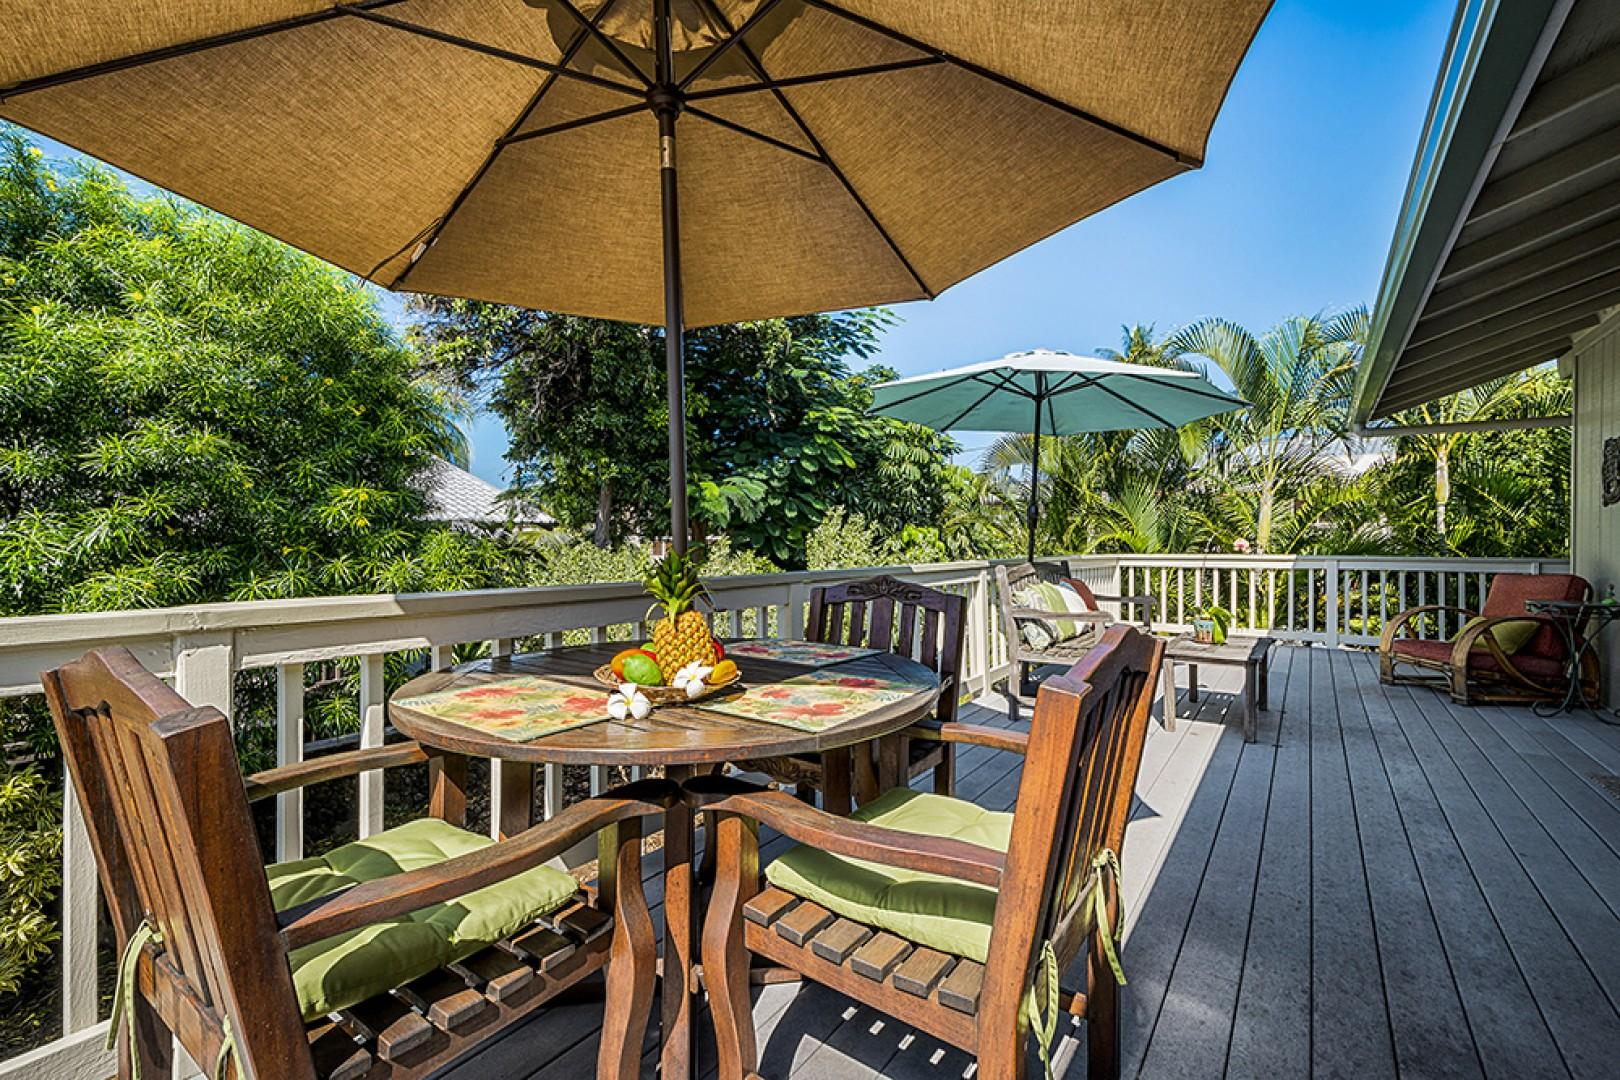 Outdoor dining for 4 people